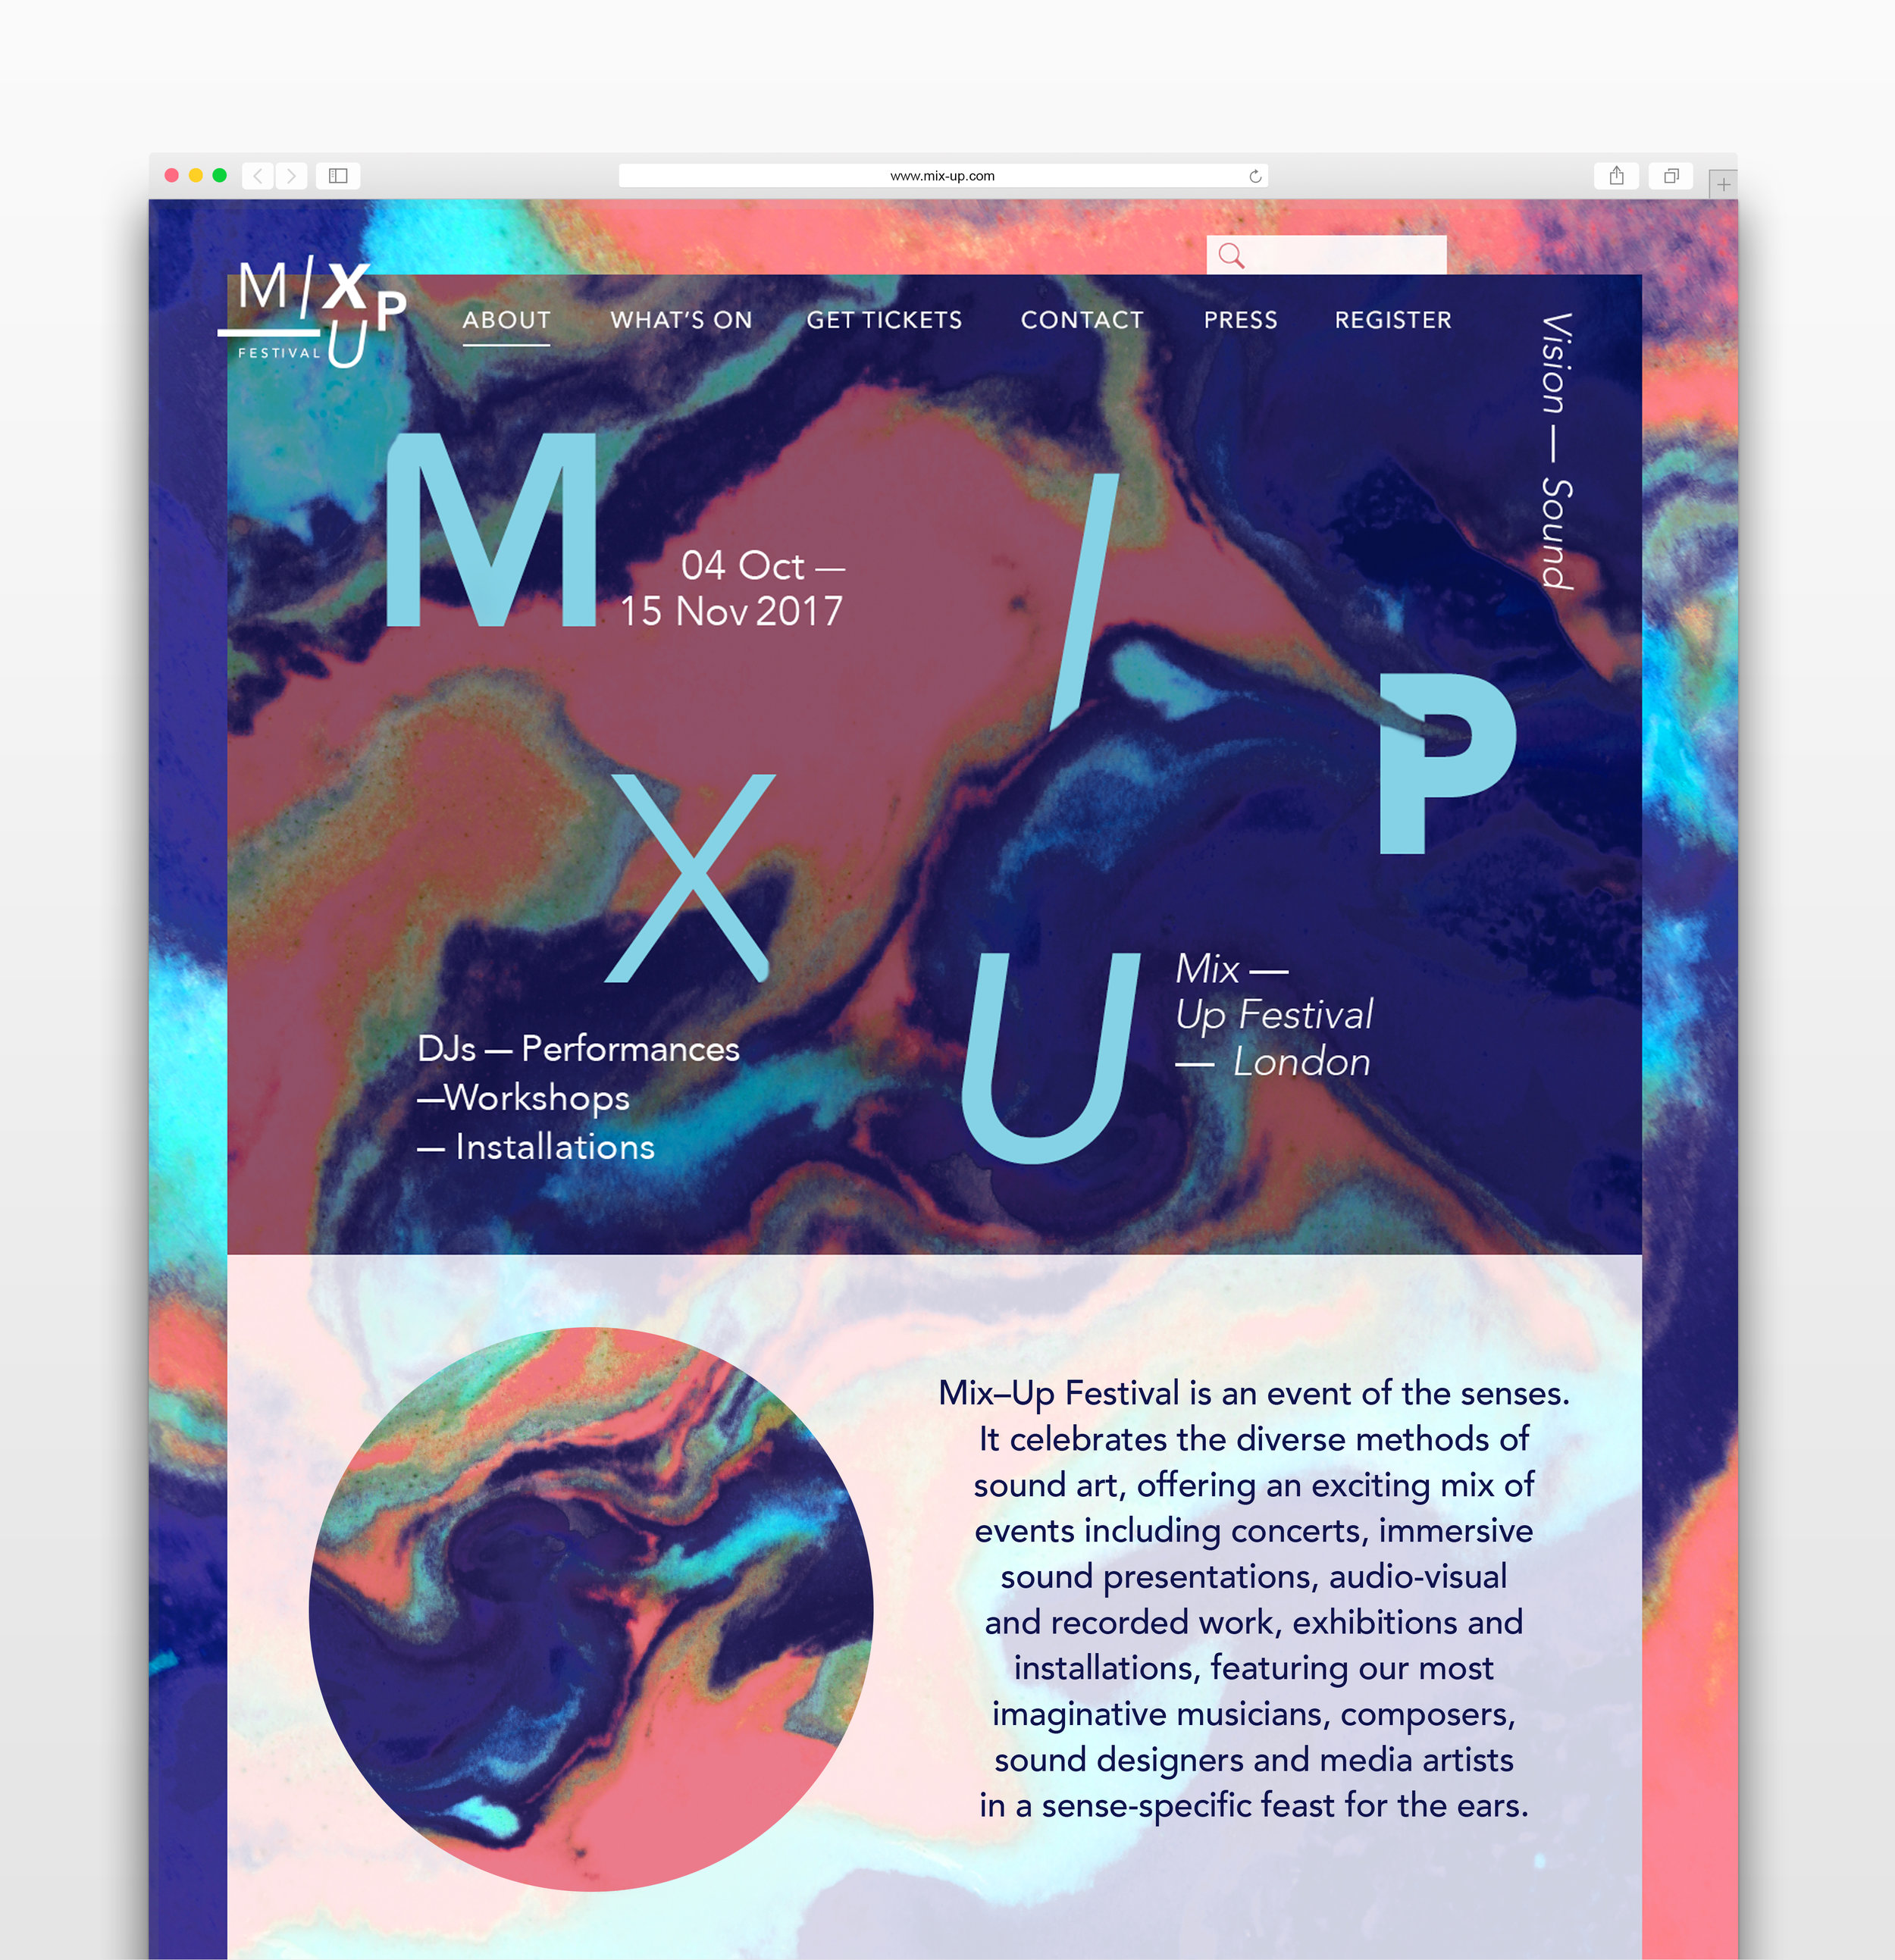 Safari-PSD-Mockup-2_mix-up_new.jpg